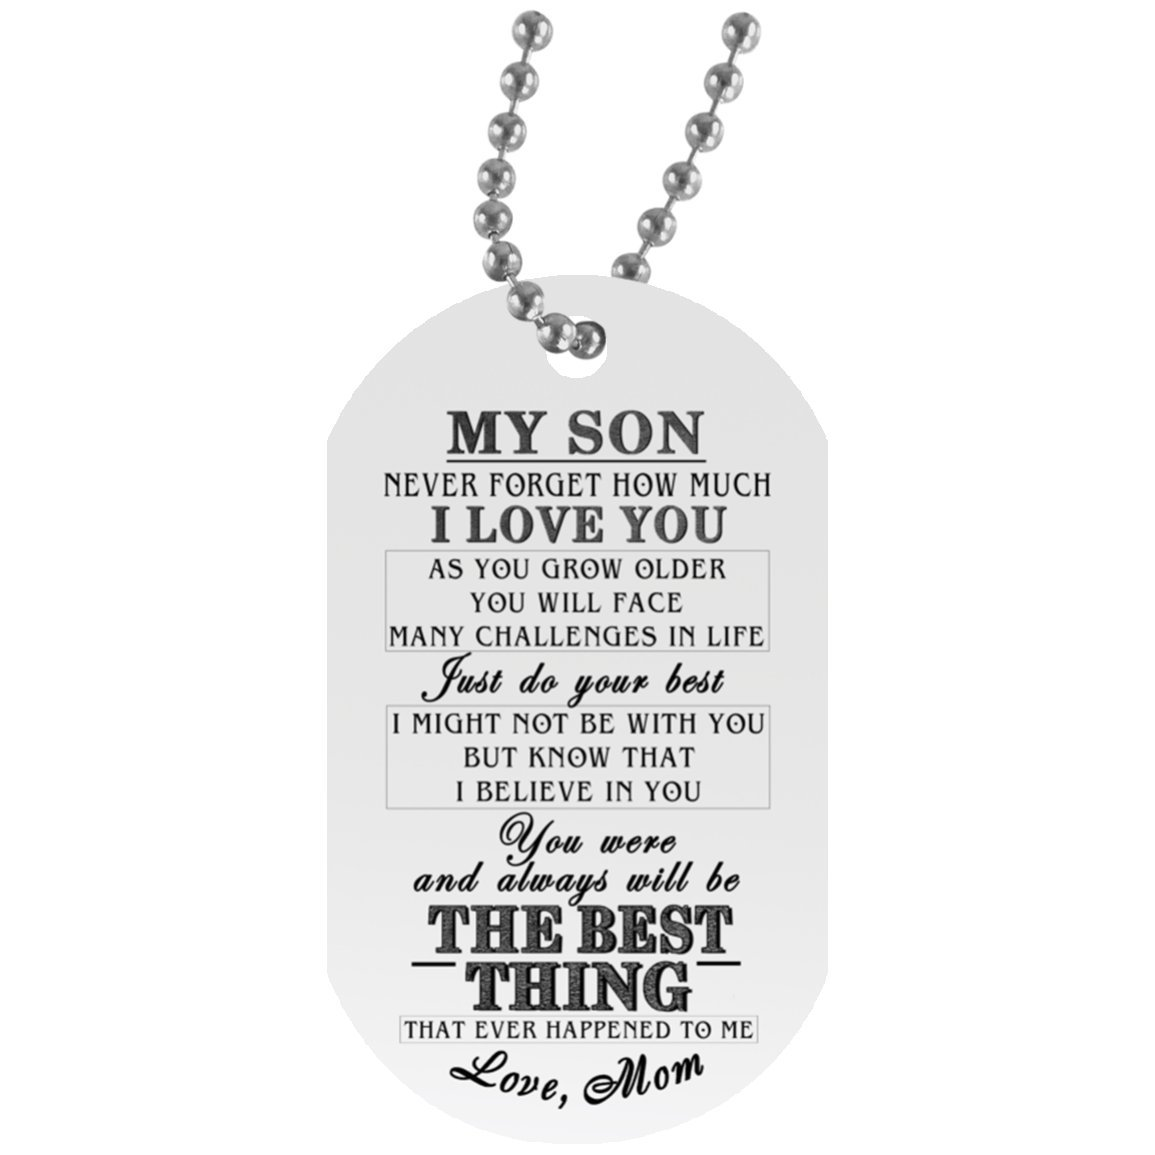 eConvenience Store Son Dog Tag Necklace From Mom - Son Mother Gifts for Him on Birthday Christmas - Love Gift Military Inspired Aluminum Dog Tag